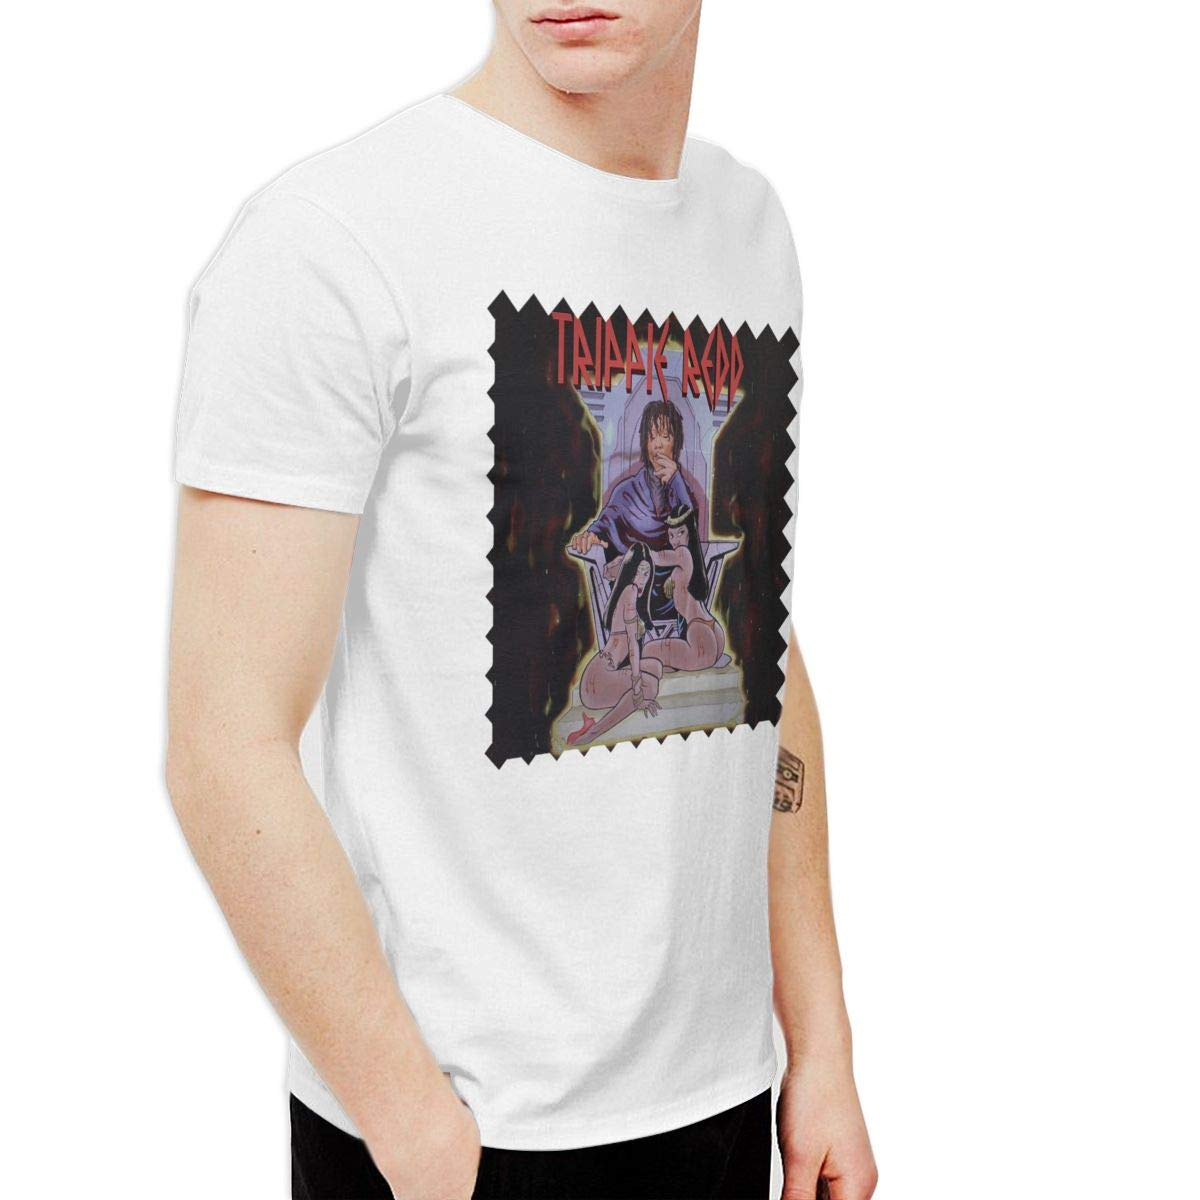 Wwdcd Trippie D A Love Letter To You Short Sleeve T Shirt 5685